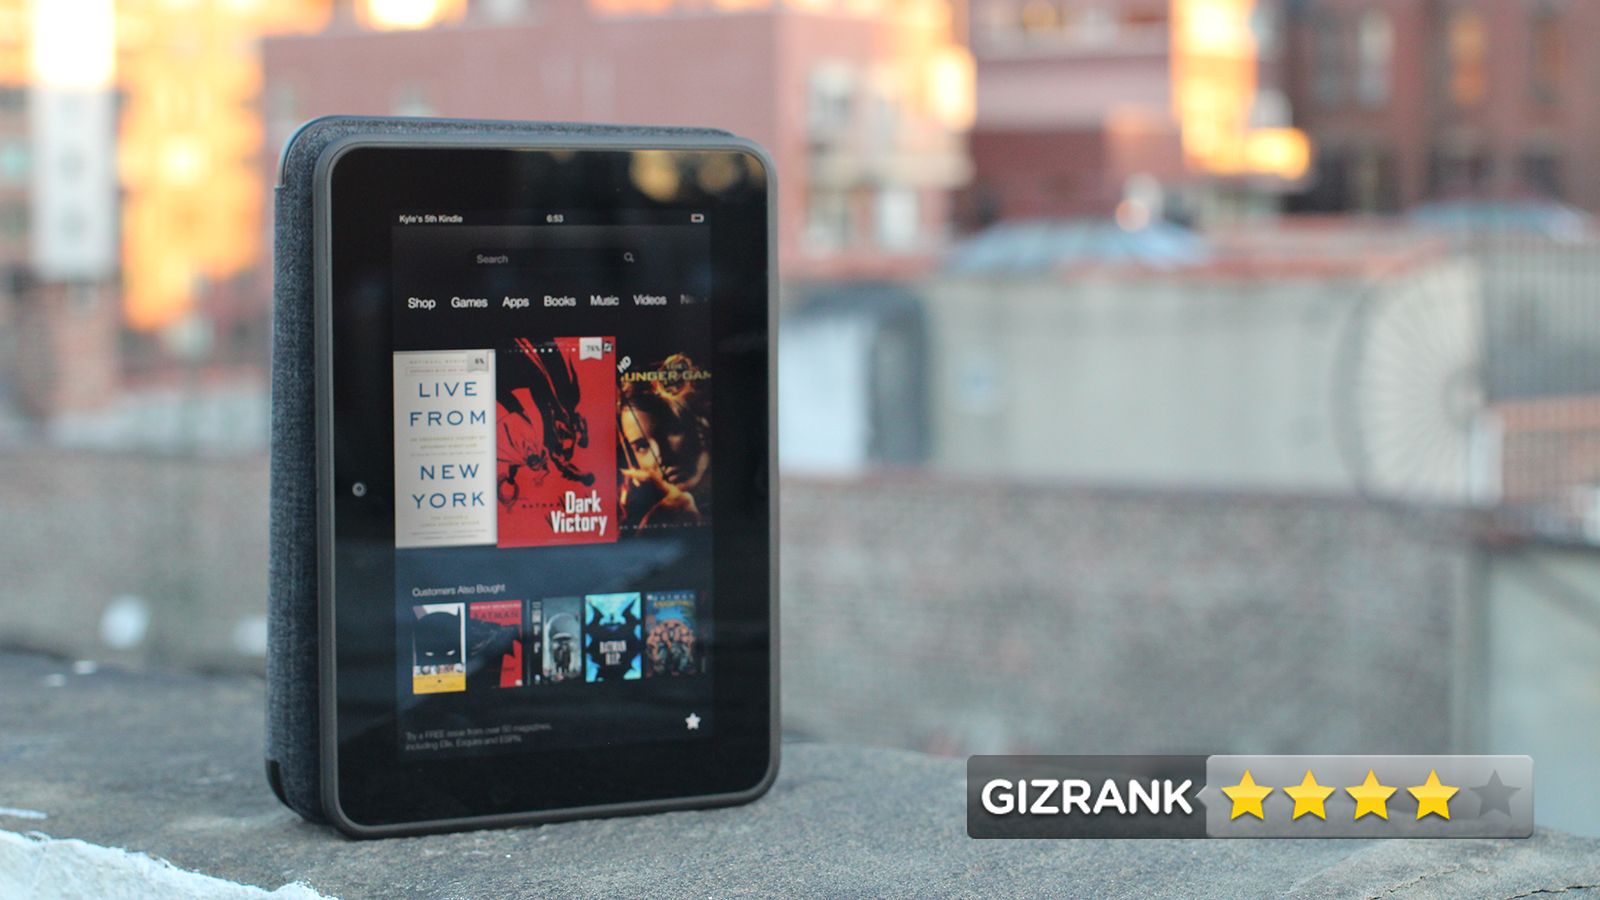 Click here to read Kindle Fire HD Review: Everything a Tablet Should Be—And Not Much More